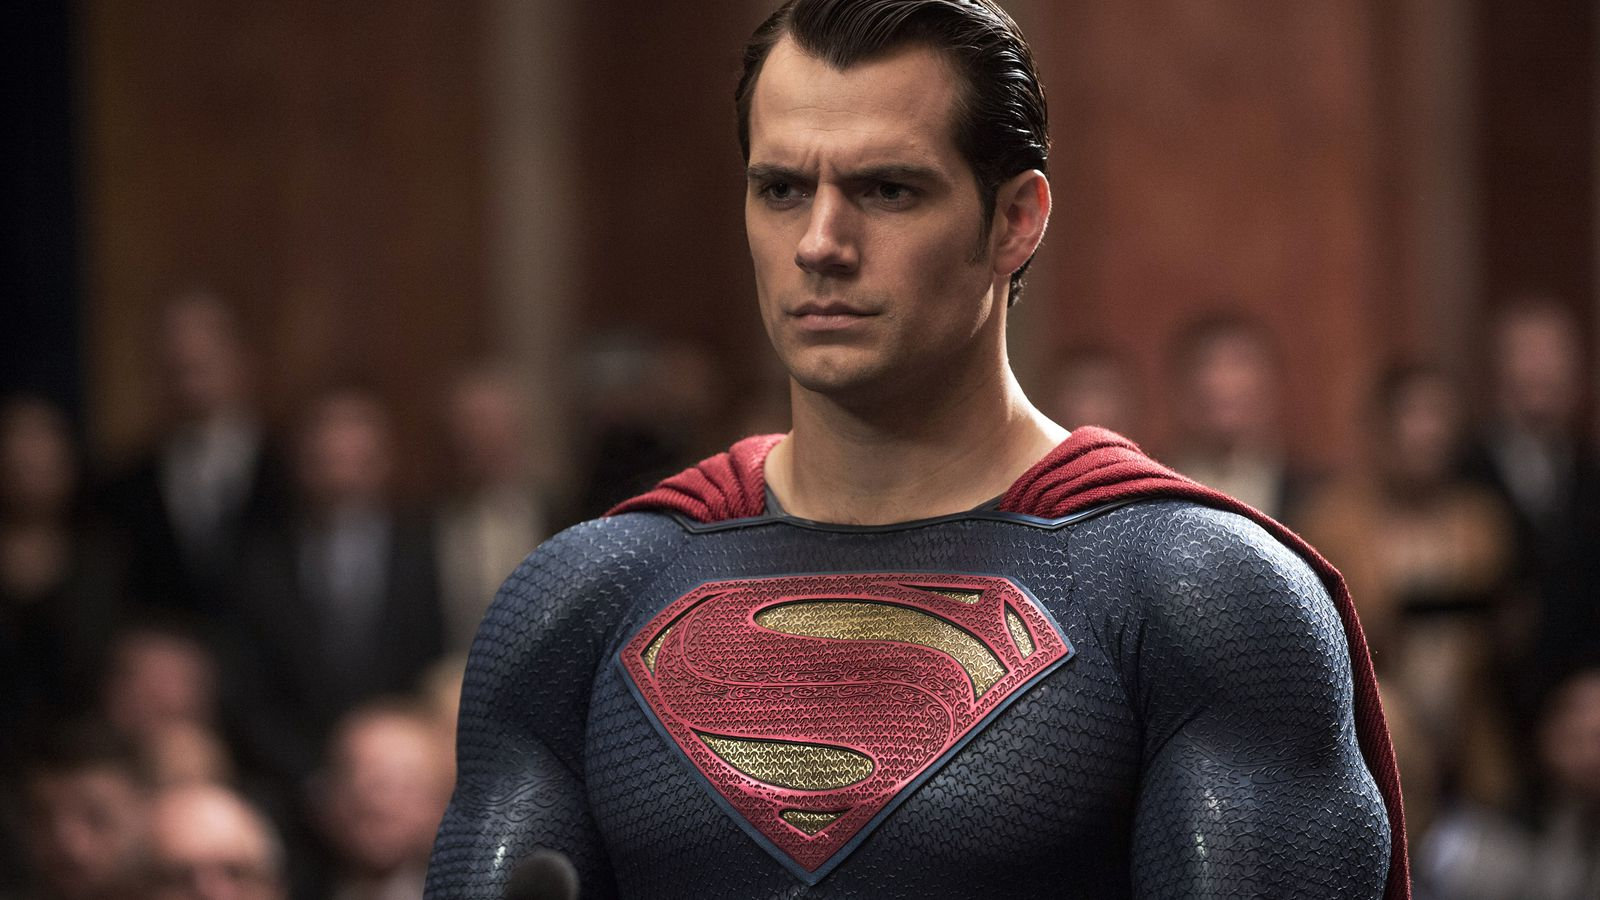 Superman is going to be in Justice League, despite Zack Snyder hinting otherwise